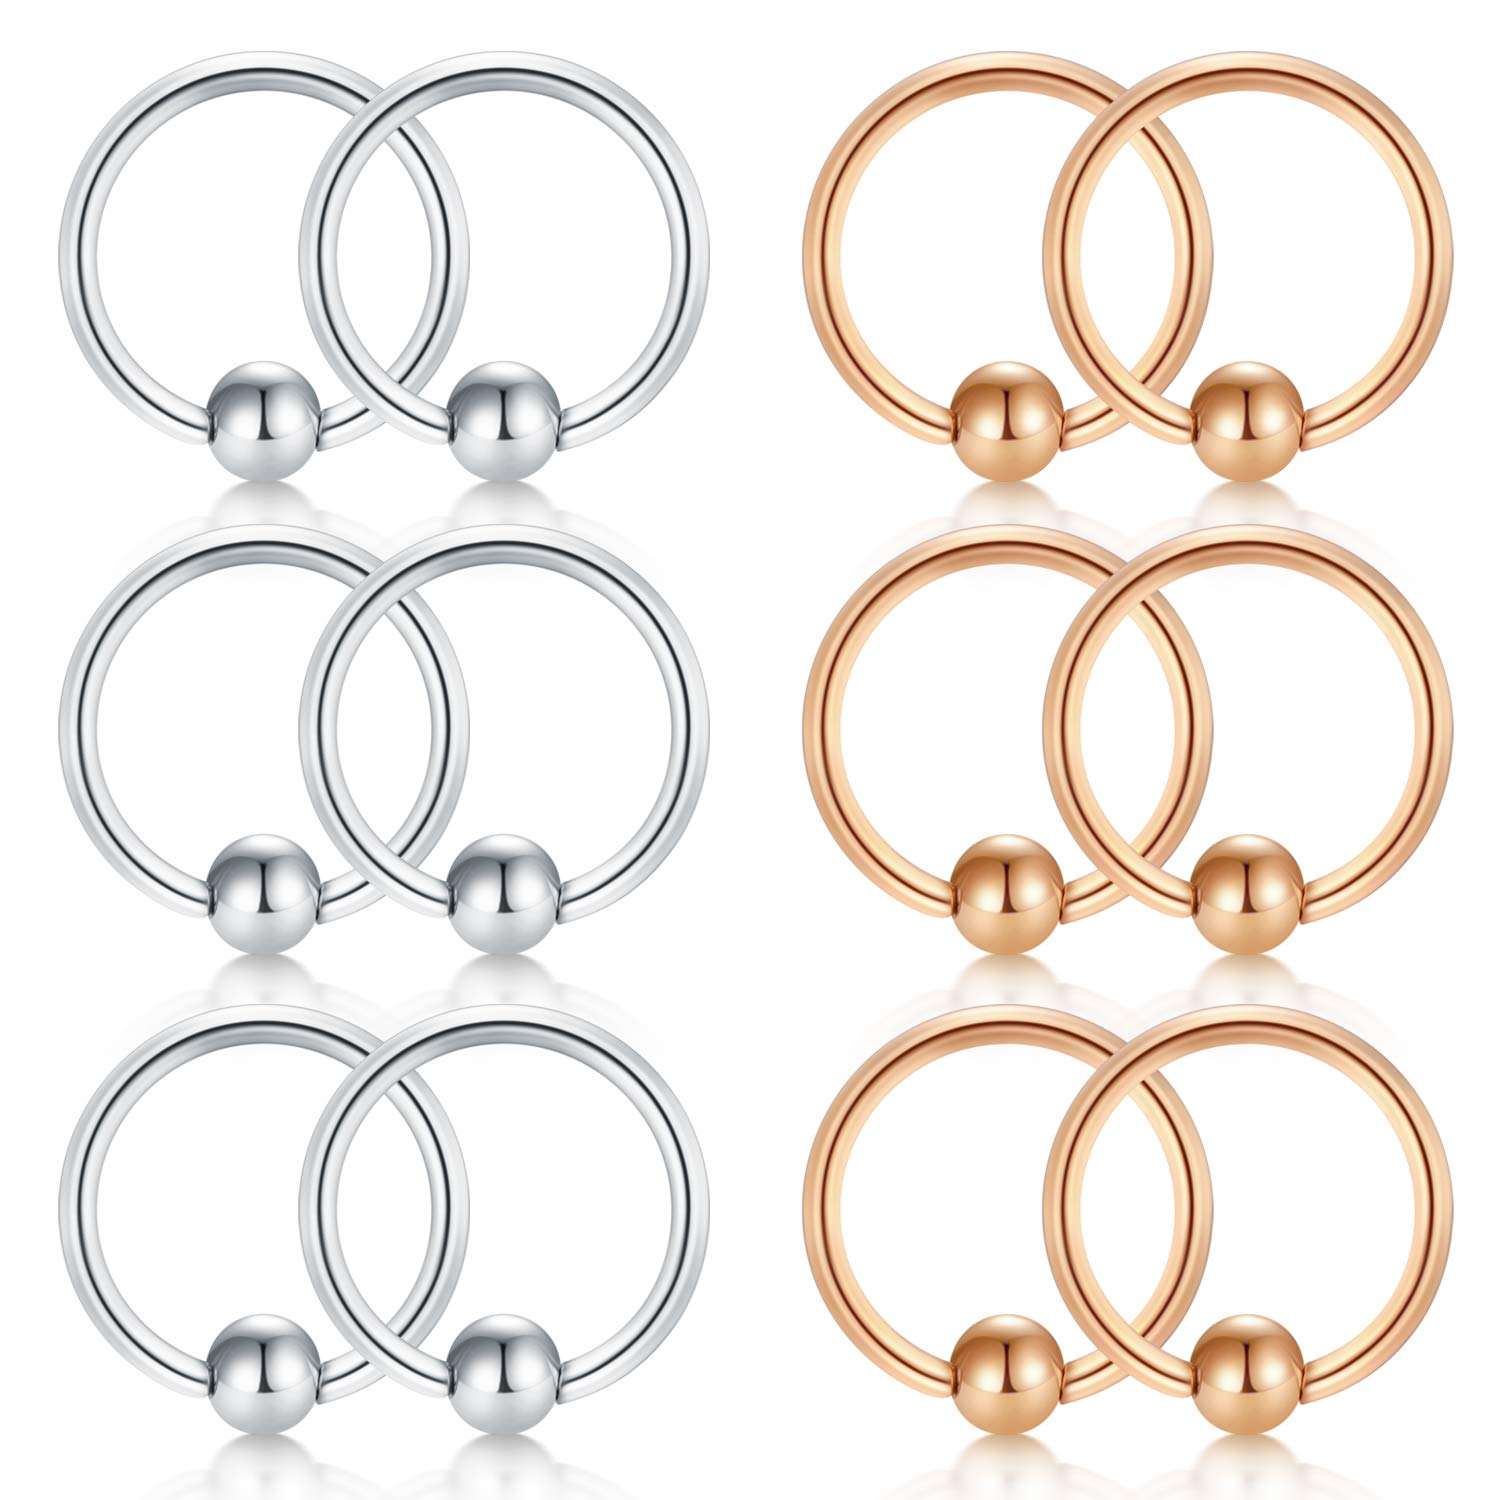 D.Bella PA Ring Tongue Rings-Internally Threaded Straight Barbell Nipple Ring 10G-12G-14G 10//12//14//16//18//25//38mm 316L Surgical Steel Pierced Body Jewelry Sold Individually